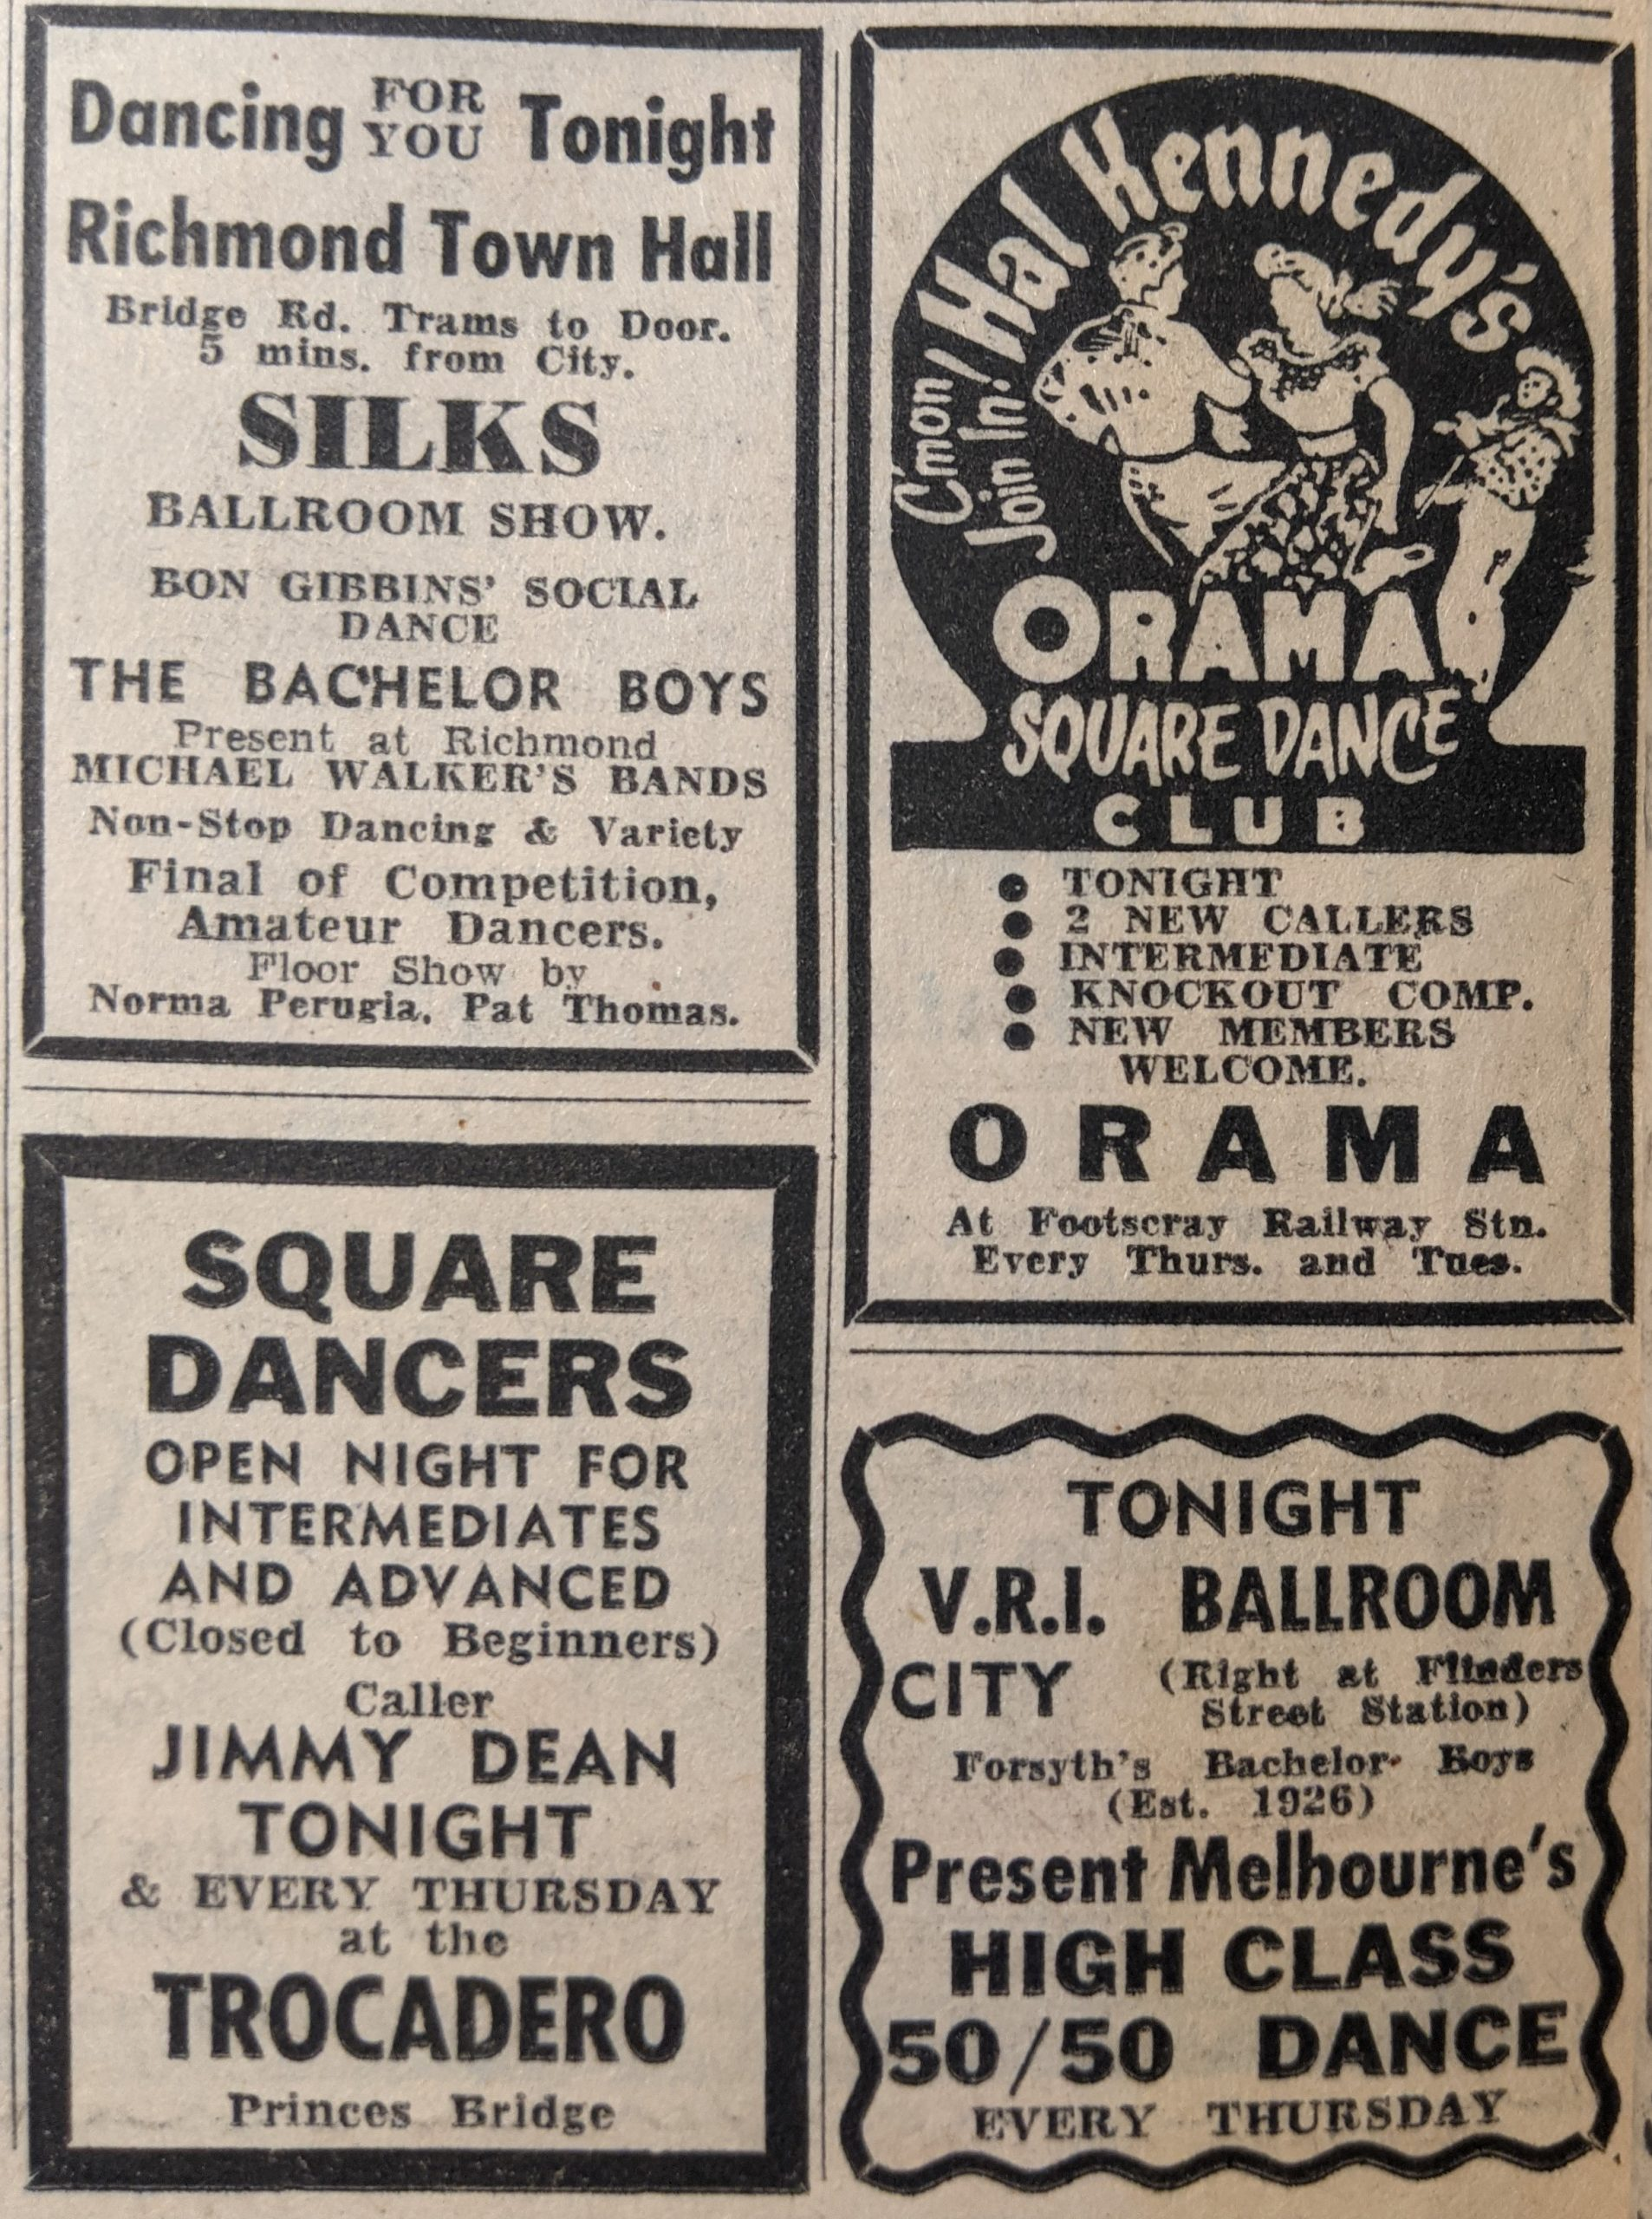 Dance advertisements, The Herald, 25 June 1953, p22. Via State Library of Victoria